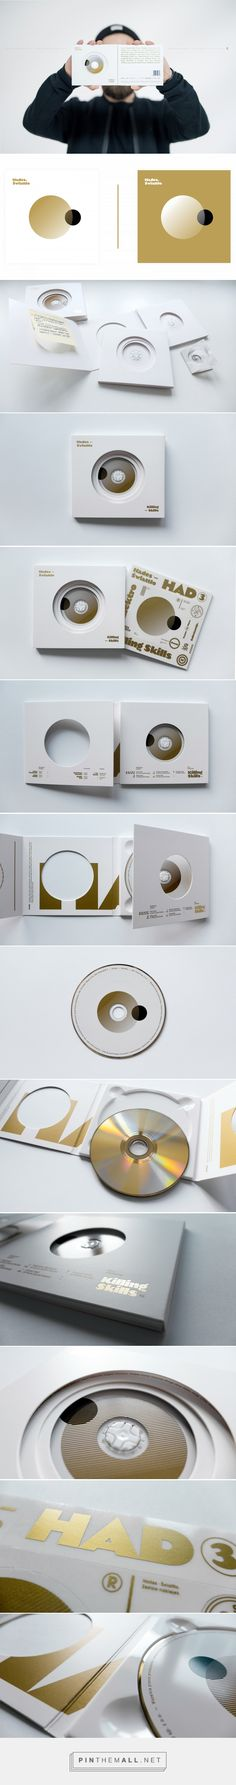 Hades - Świattło / CD Packaging - Packaging of the World - Creative Package Design Gallery - http://www.packagingoftheworld.com/2017/02/hades-swiatto-cd-packaging.html